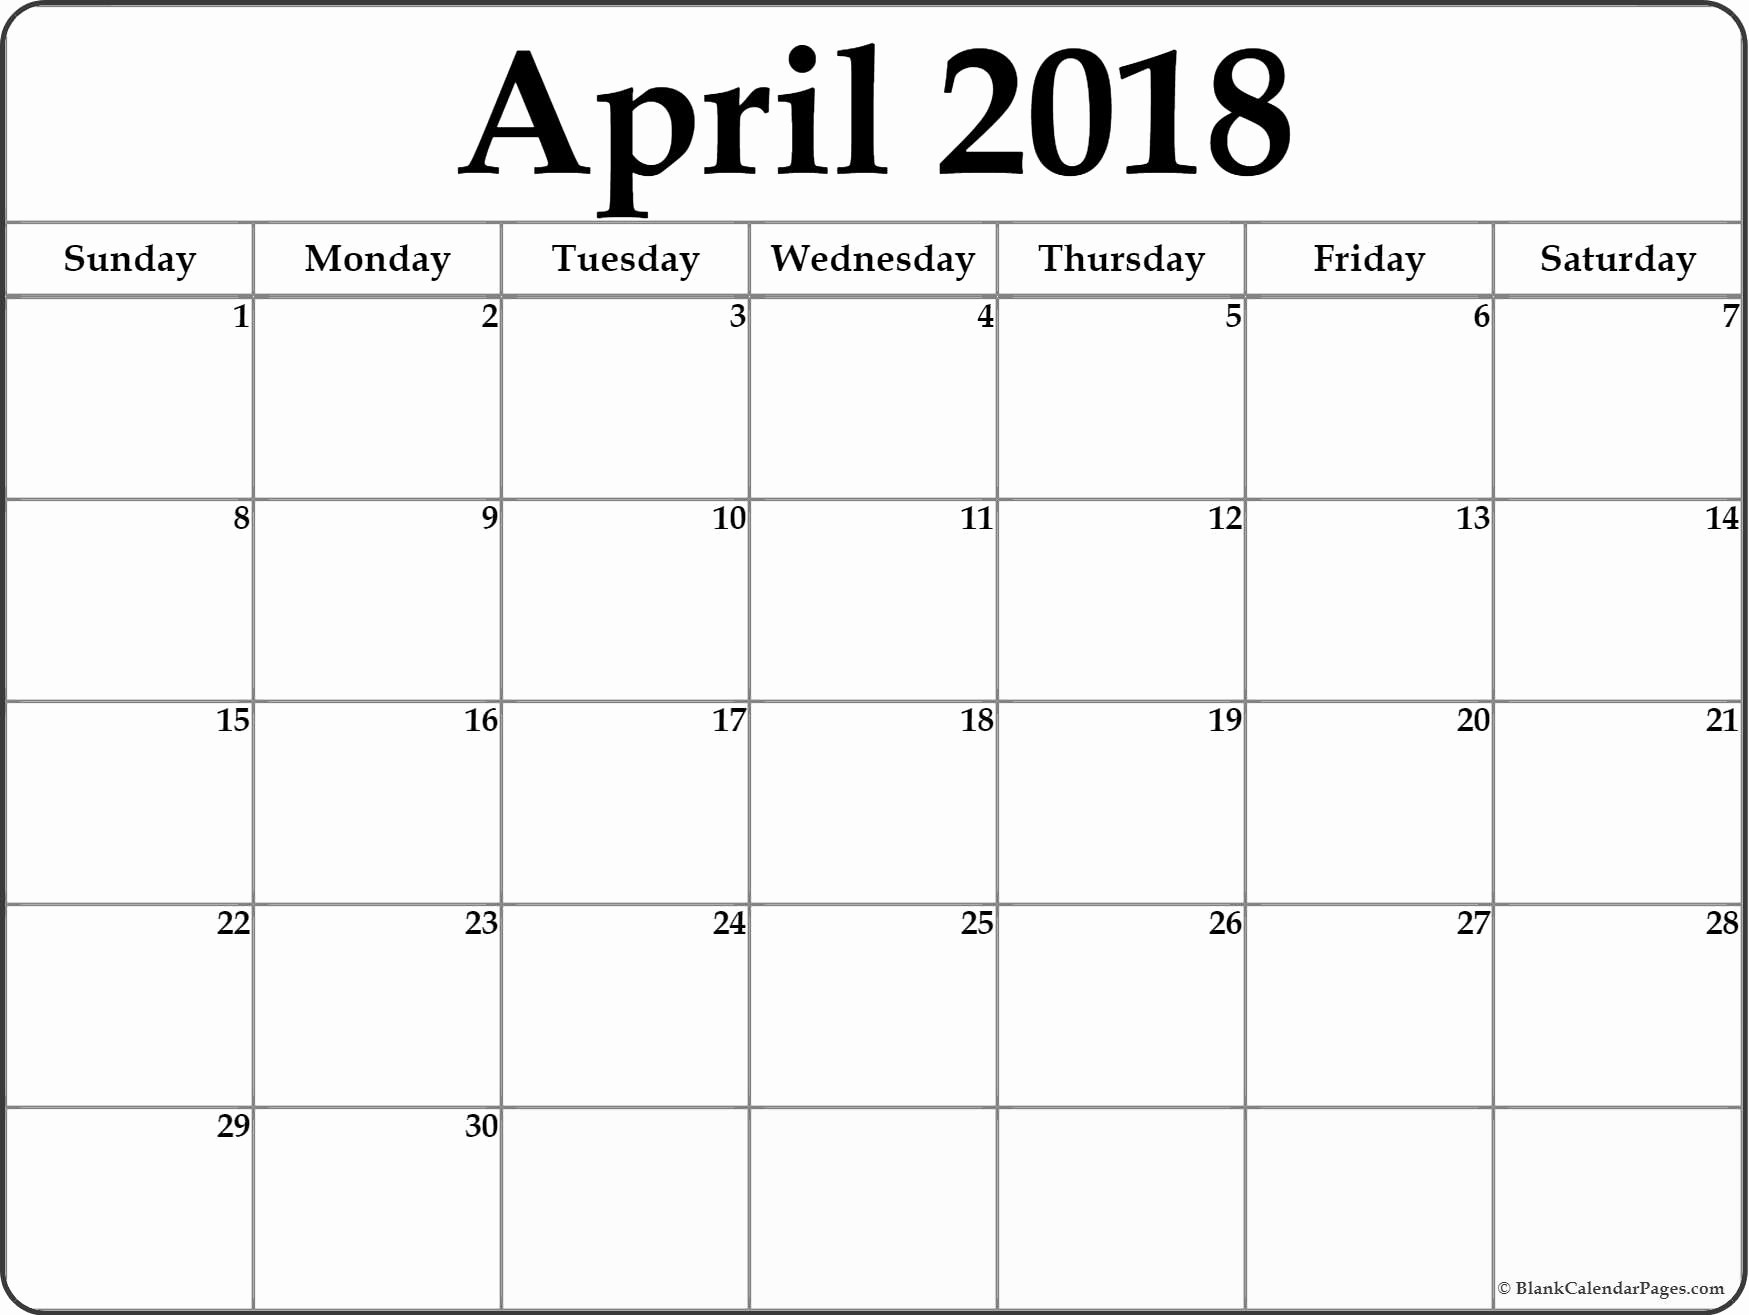 Blank April 2018 Calendar Template Best Of April 2018 Blank Calendar Templates